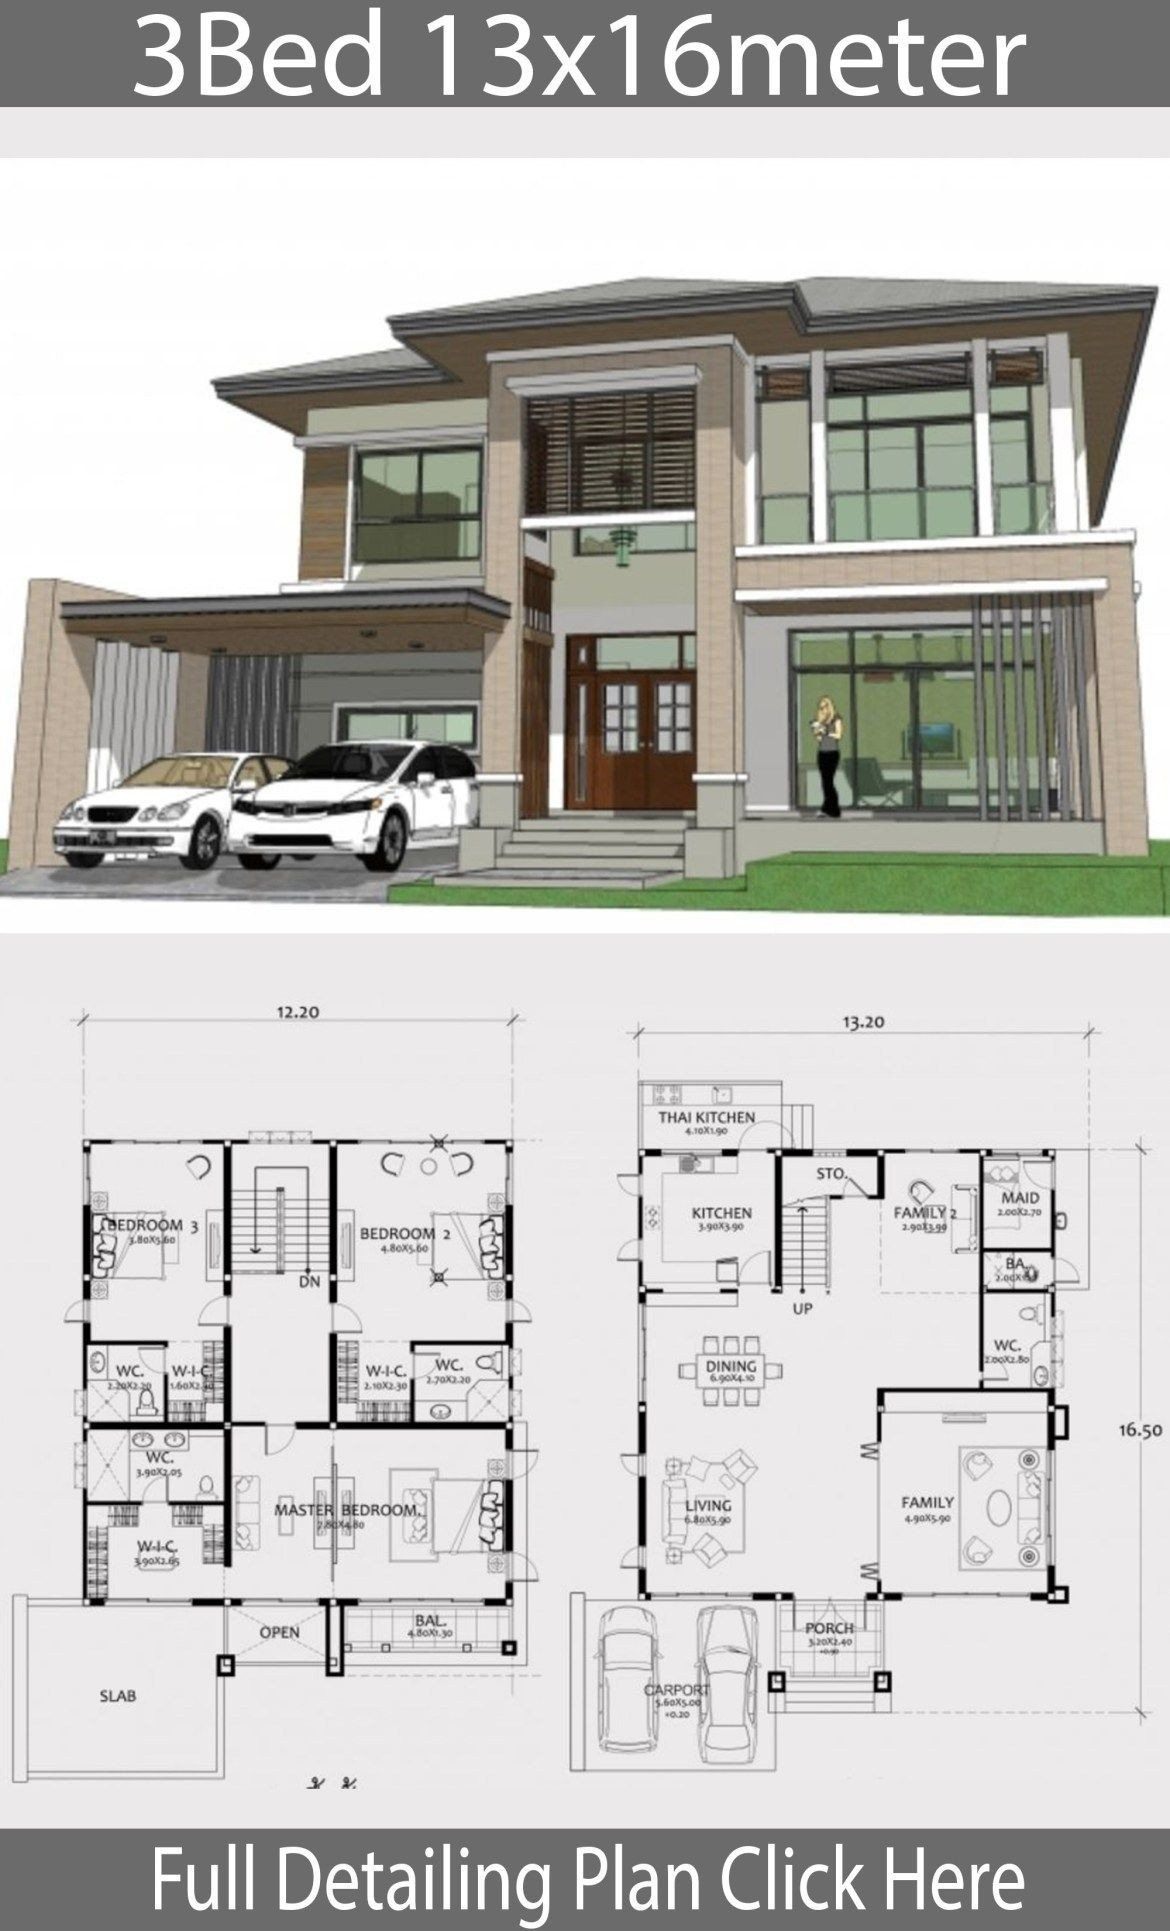 Best Modern House Plans Home Design Plan 13x16m With 3 Bedrooms In 2020 Architectural House Plans Model House Plan Cool House Designs